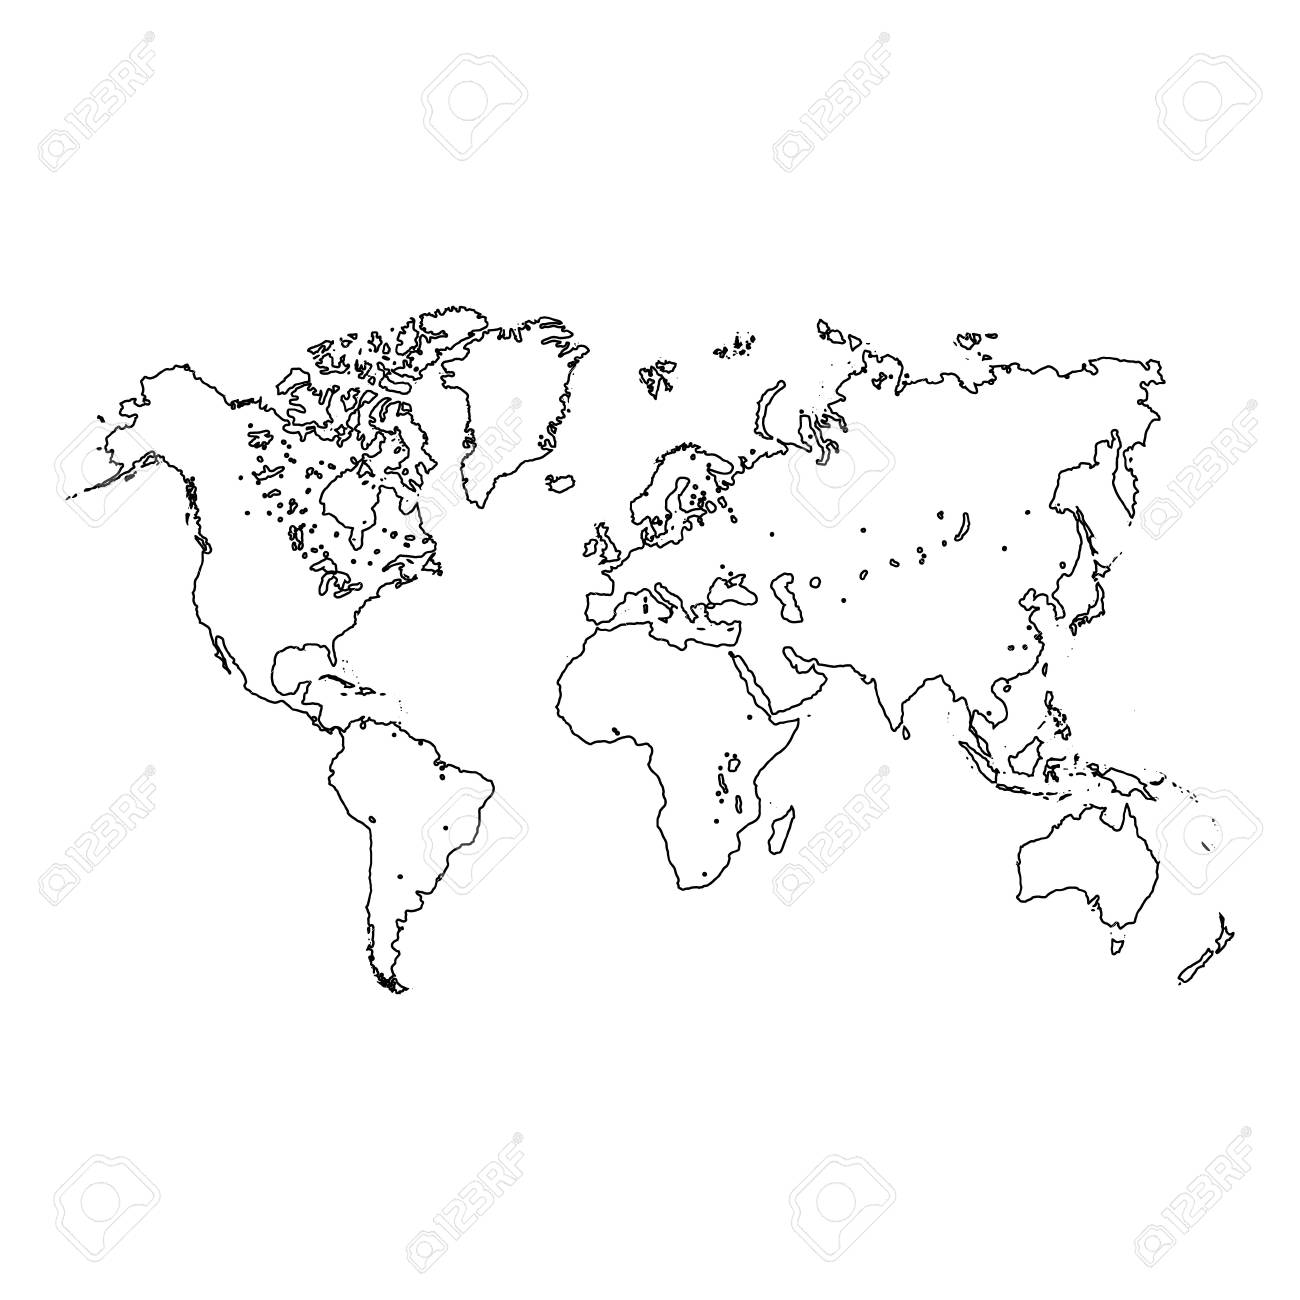 Freehand world map sketch on white background royalty free cliparts freehand world map sketch on white background stock vector 84358822 gumiabroncs Image collections